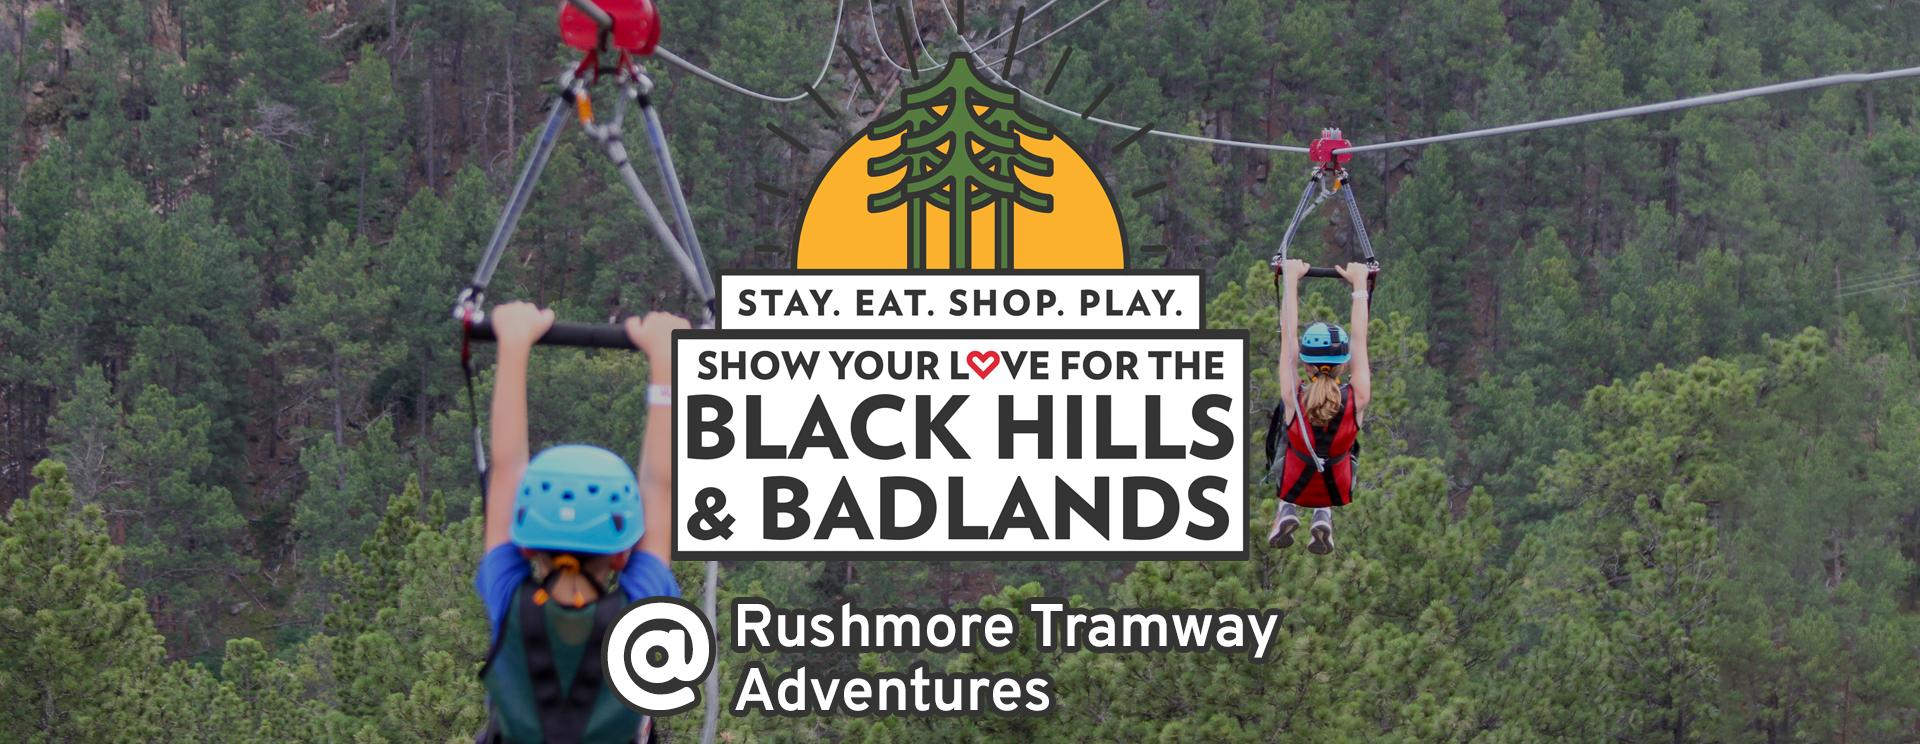 Rushmore Tramway Adventures | 2020 Safety Measures